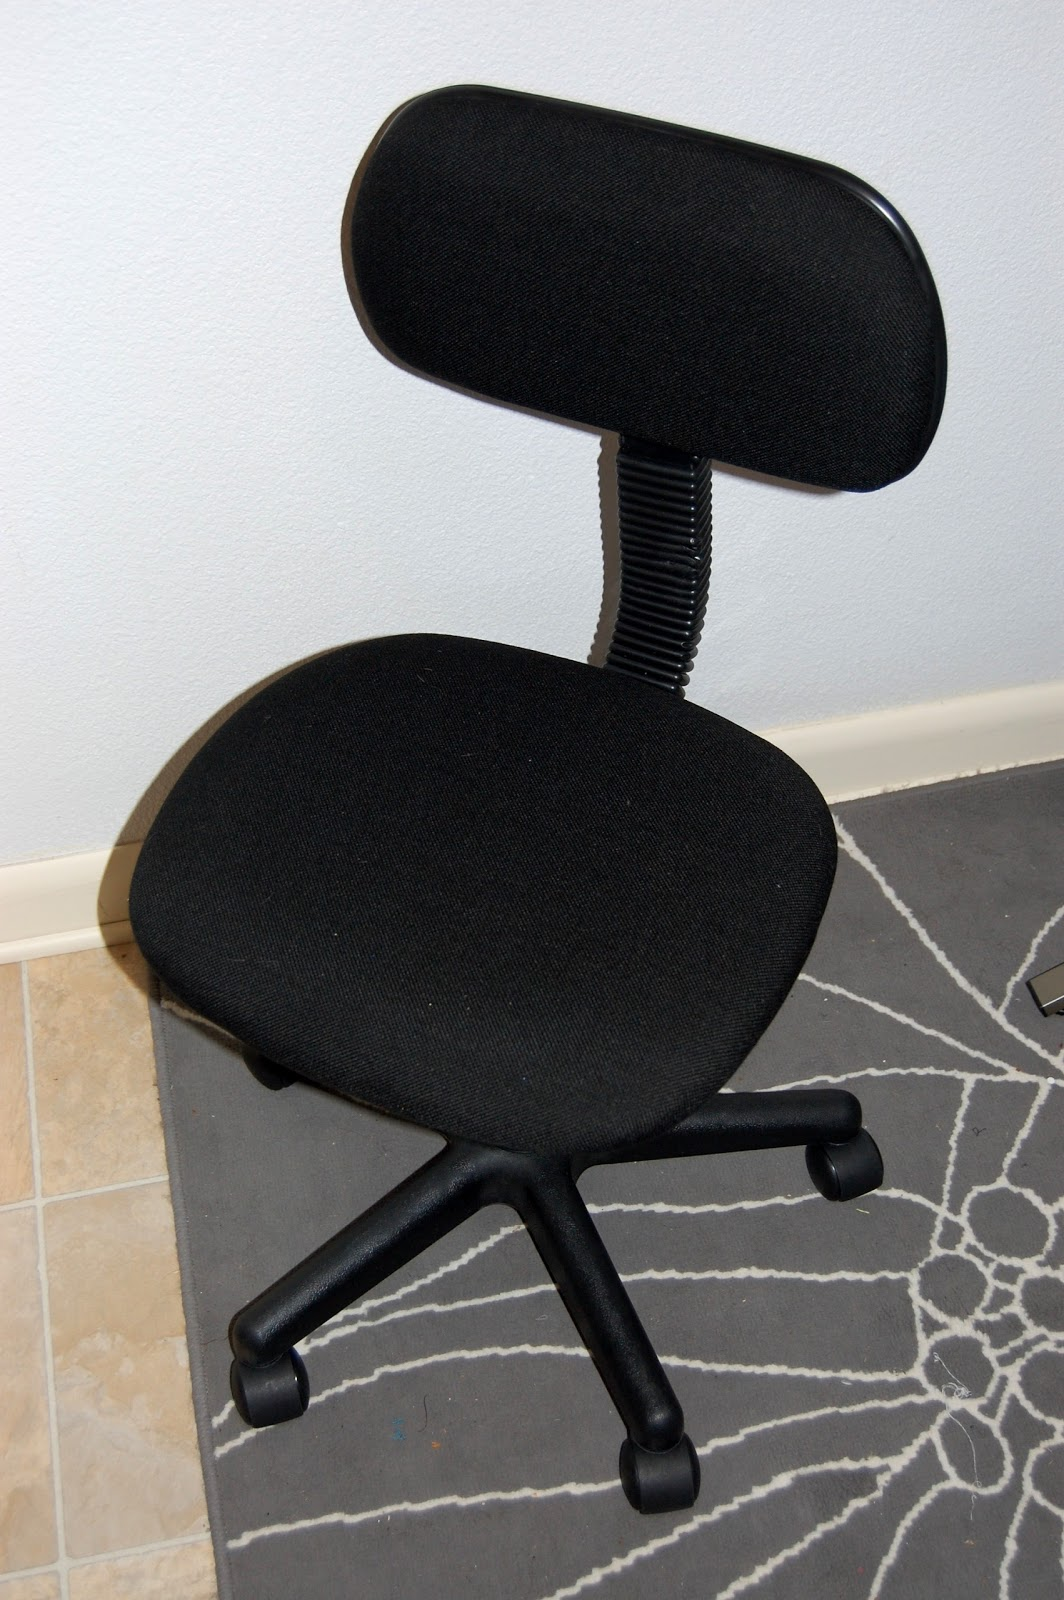 reupholster office chair back swing history paint it pretty a boring